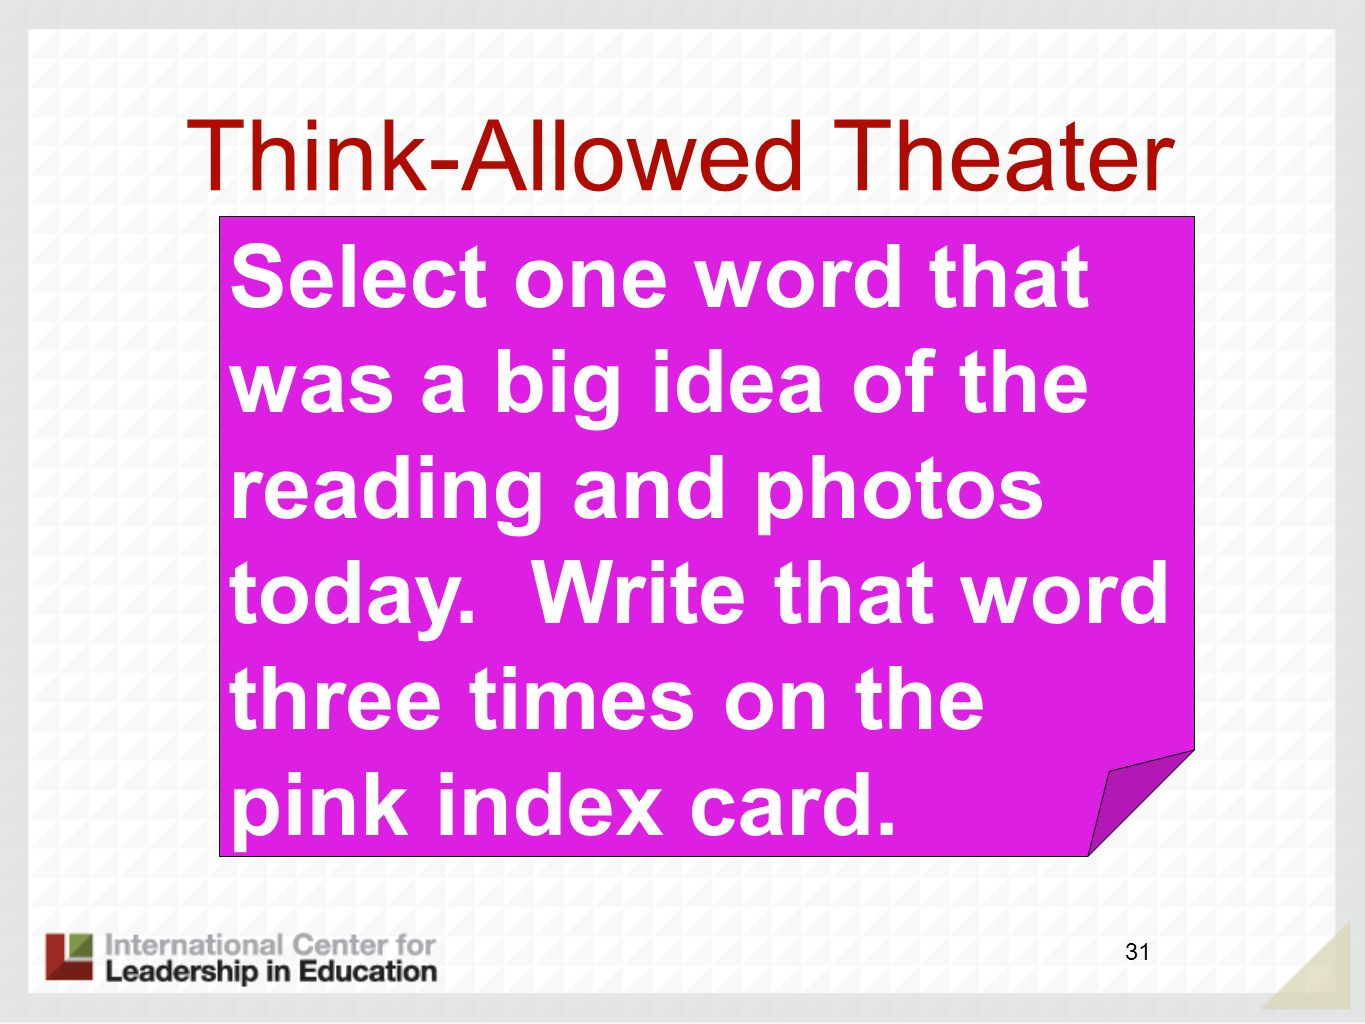 Think-Allowed Theater 31 Select one word that was a big idea of the reading and photos today. Write that word three times on the pink index card.